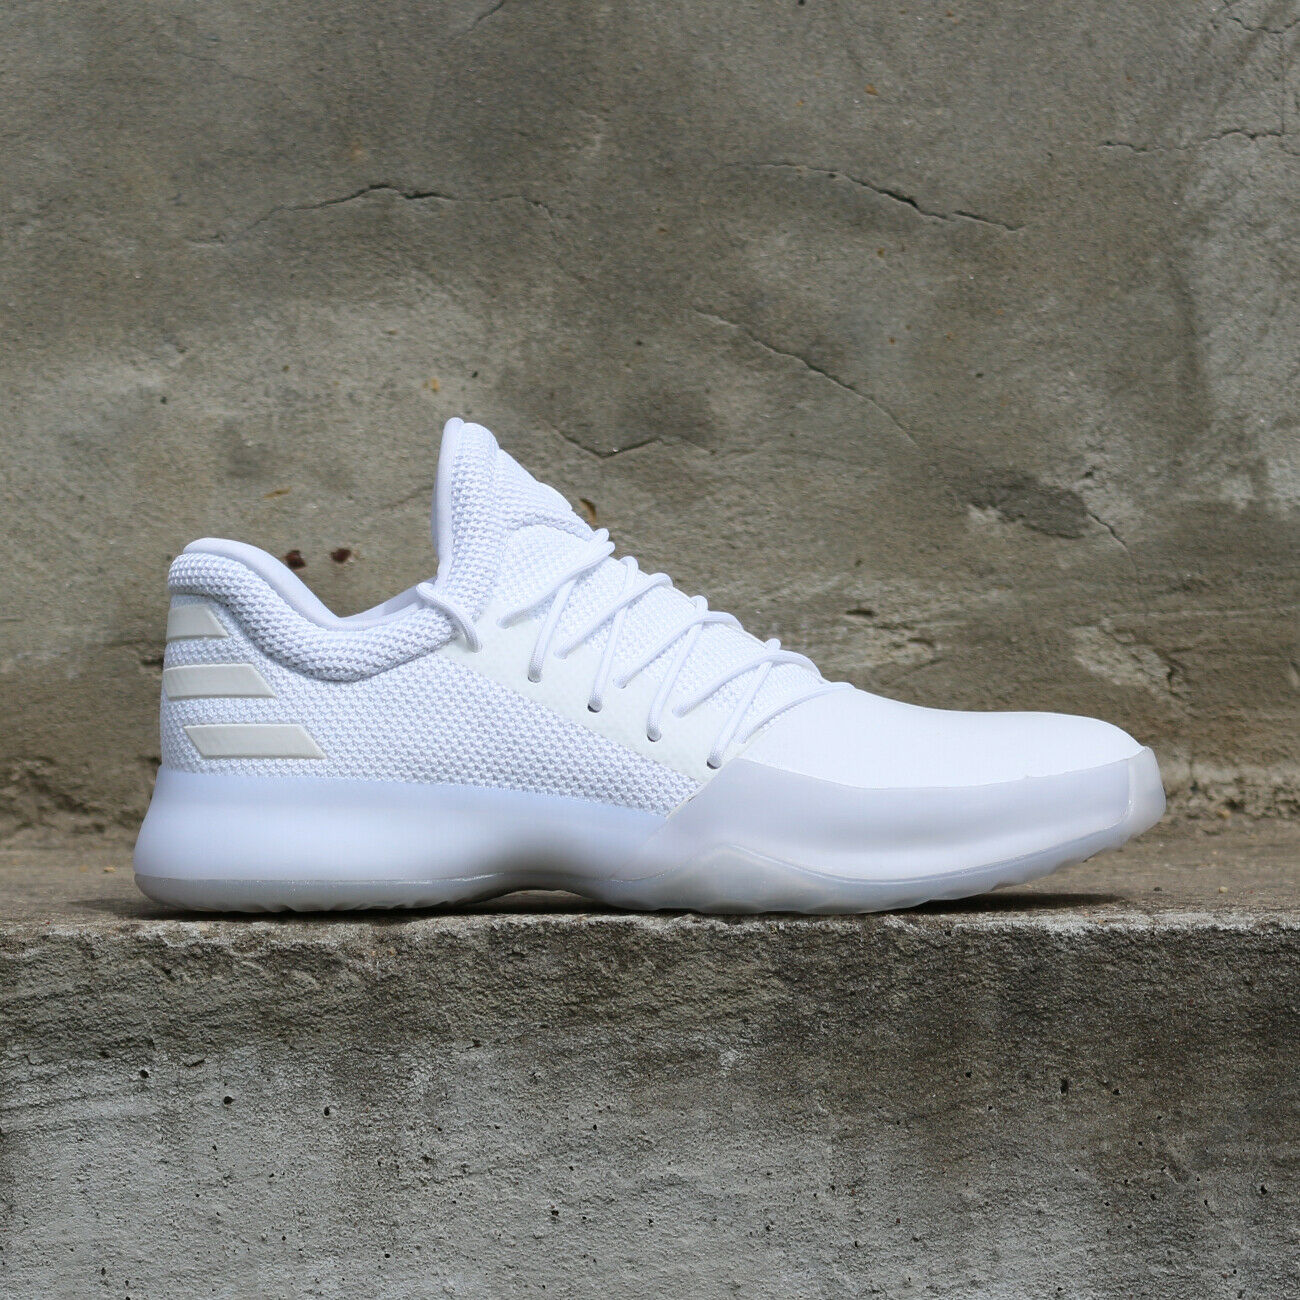 adidas Harden Vol. 1 BY4525 Yacht Party